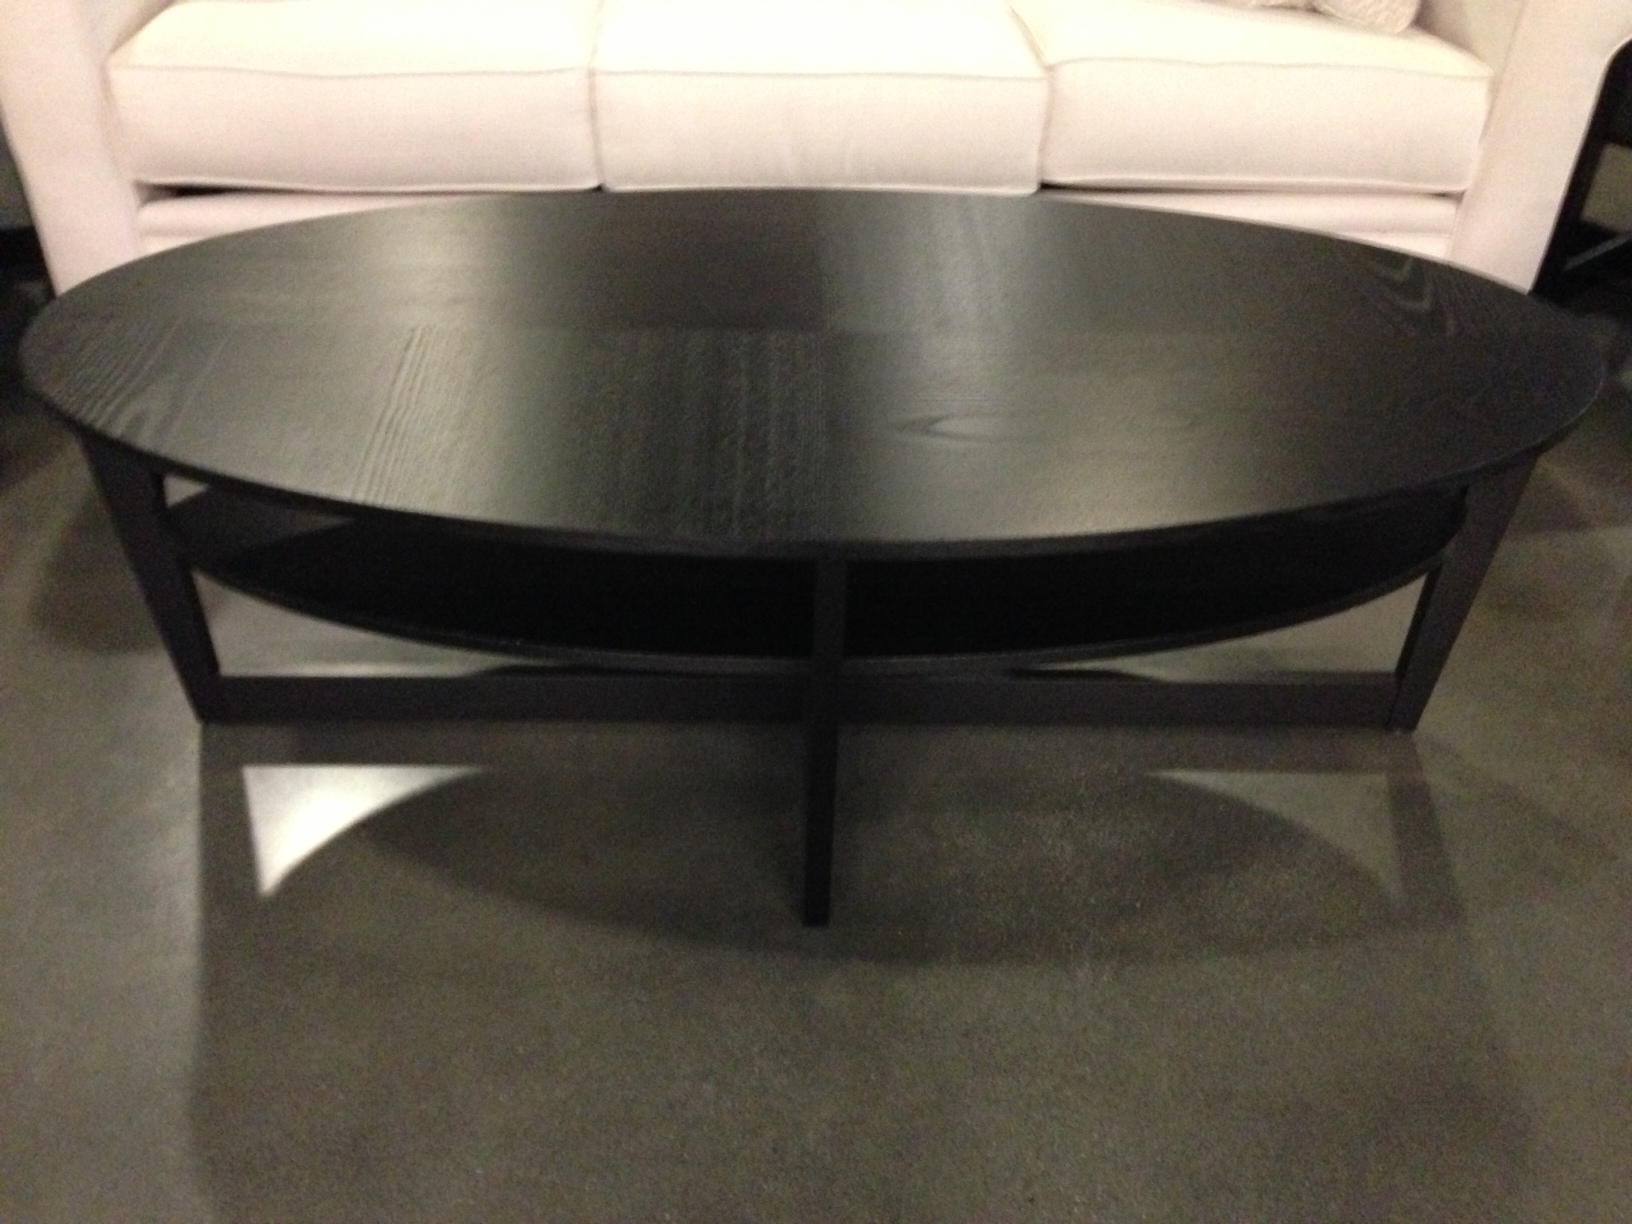 Encore Oval Shaped Coffee Table Contemporary Focus For Glass for Oval Shaped Coffee Tables (Image 12 of 30)